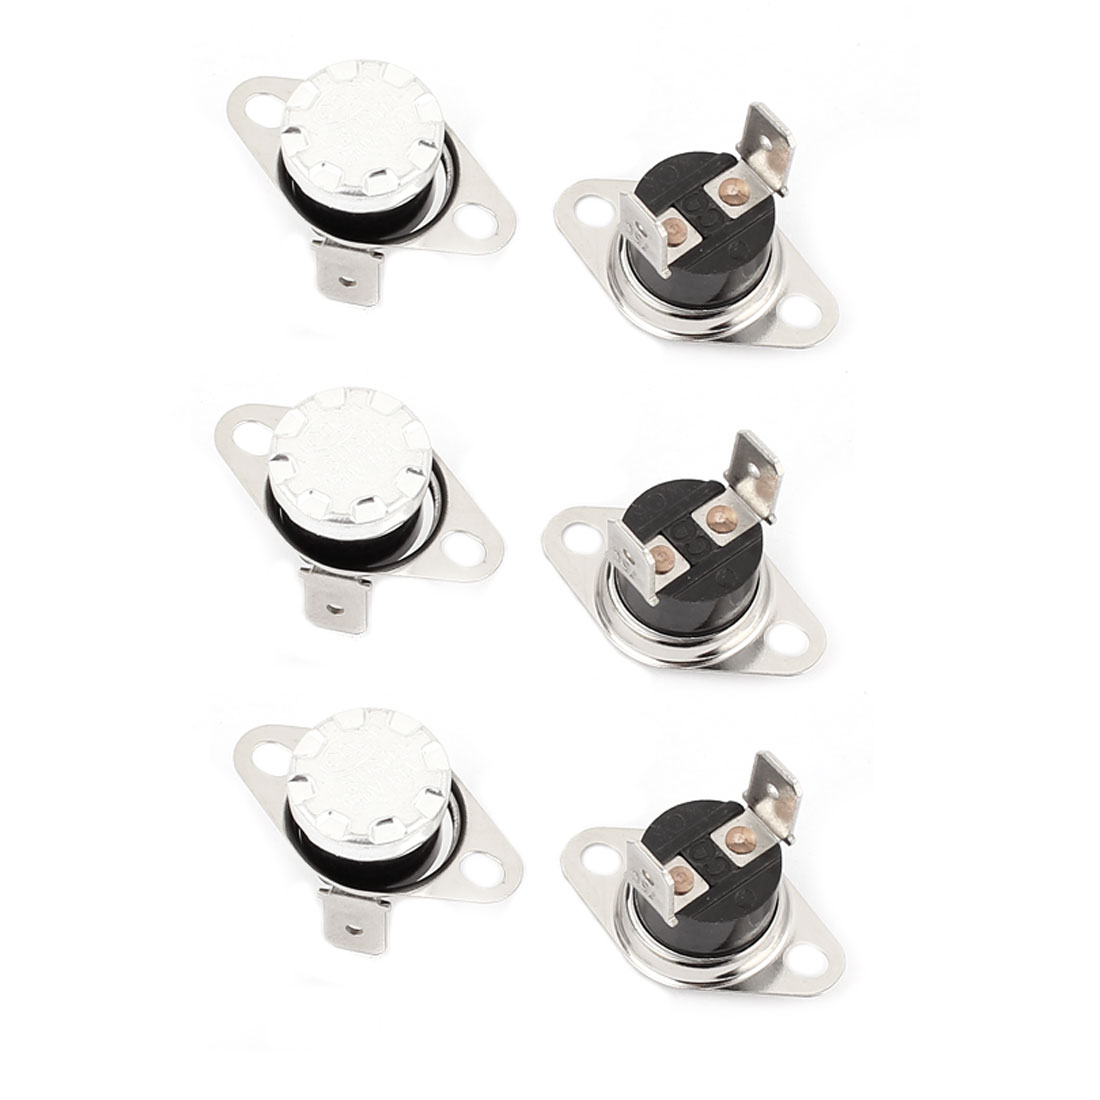 6 Pcs KSD302 Temperature Control Switch Thermostats 250VAC 10A 75 Celsius N.C.